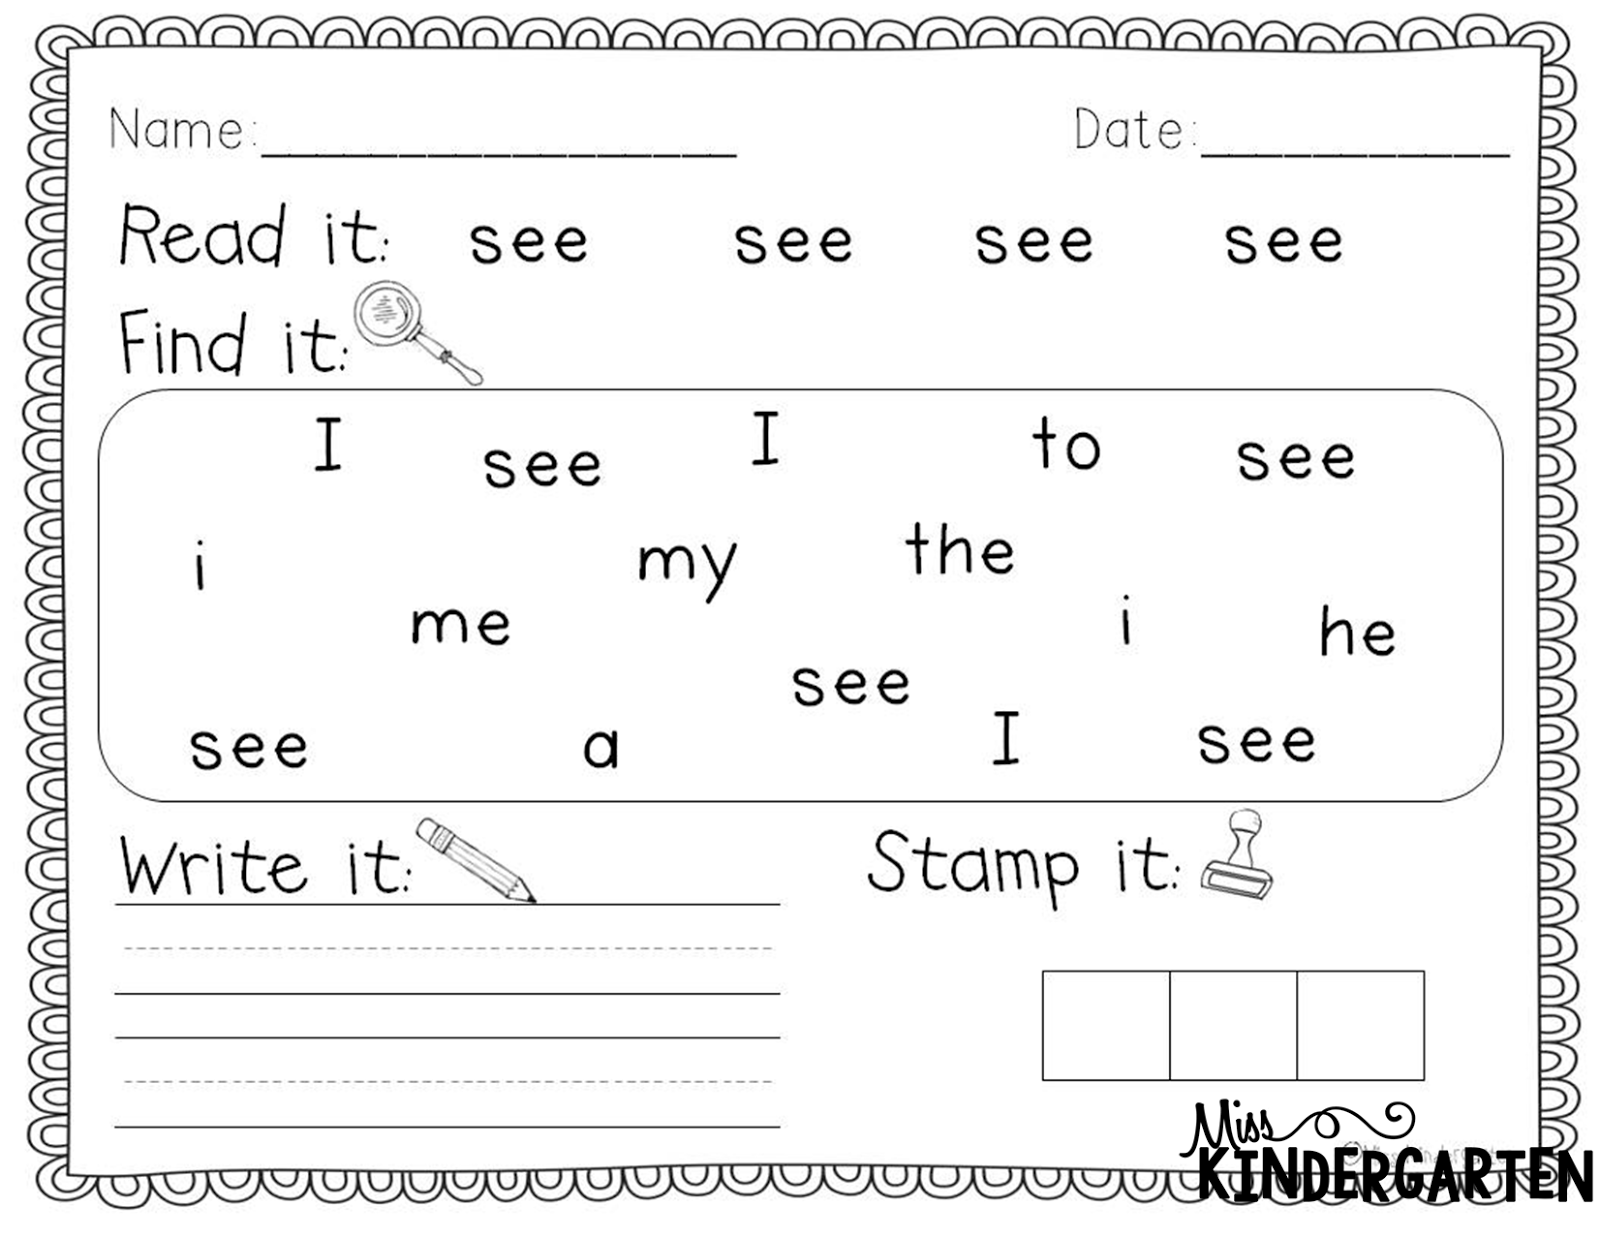 Worksheet Free Printable Sight Words For Kindergarten sight word practice miss kindergarten httpwww teacherspayteachers comproductsight word